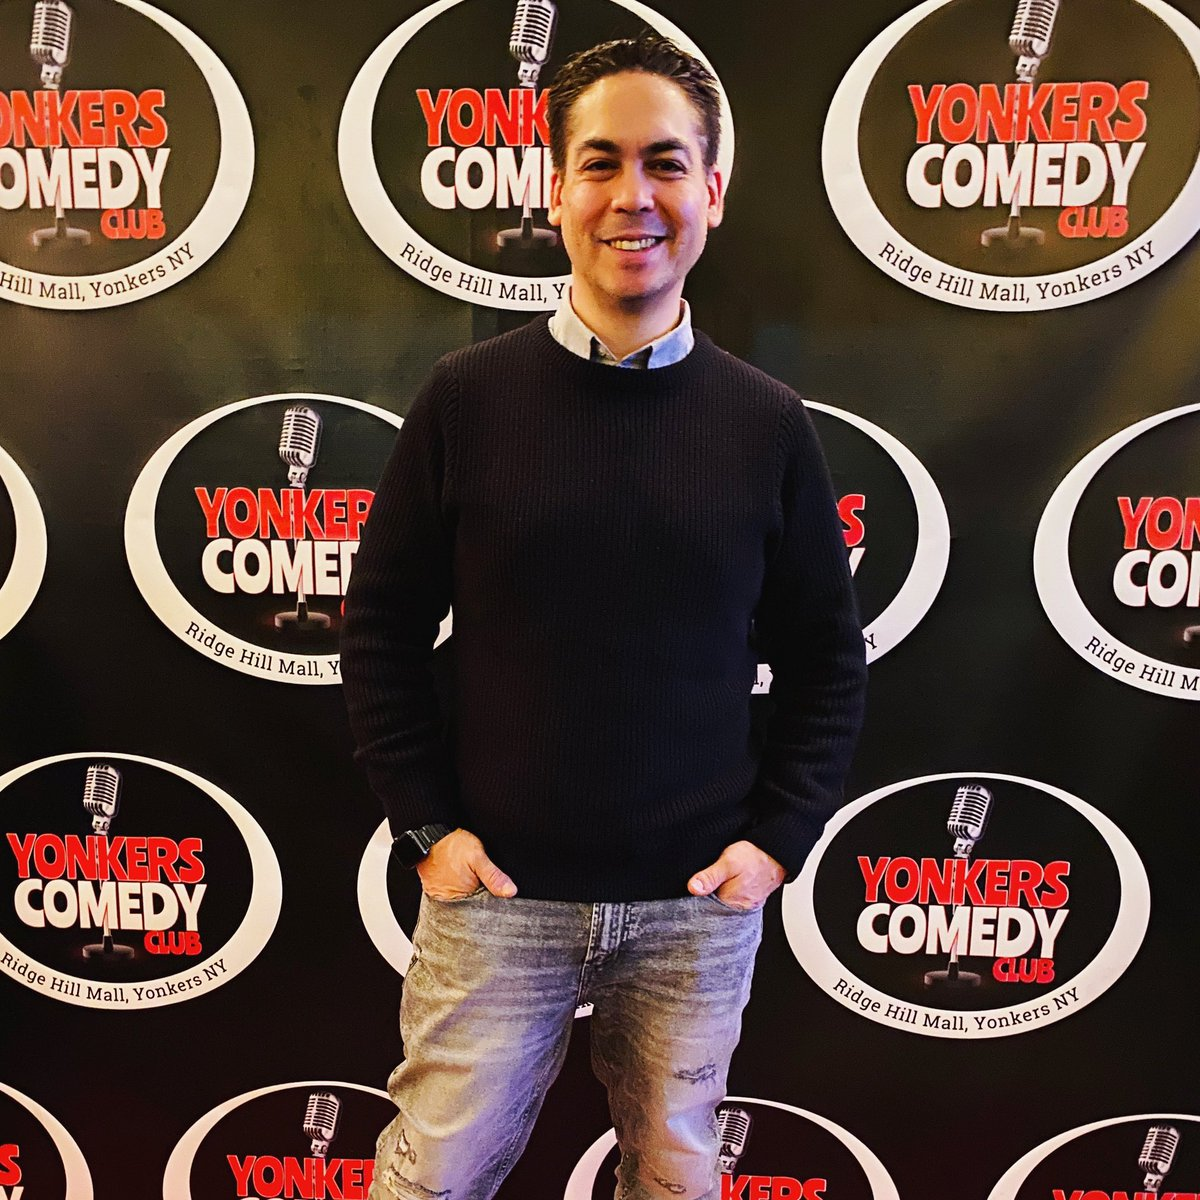 Thank you @yonkerscomedyclub for having me tonight! #Vdayspecial #comedylife 🎤